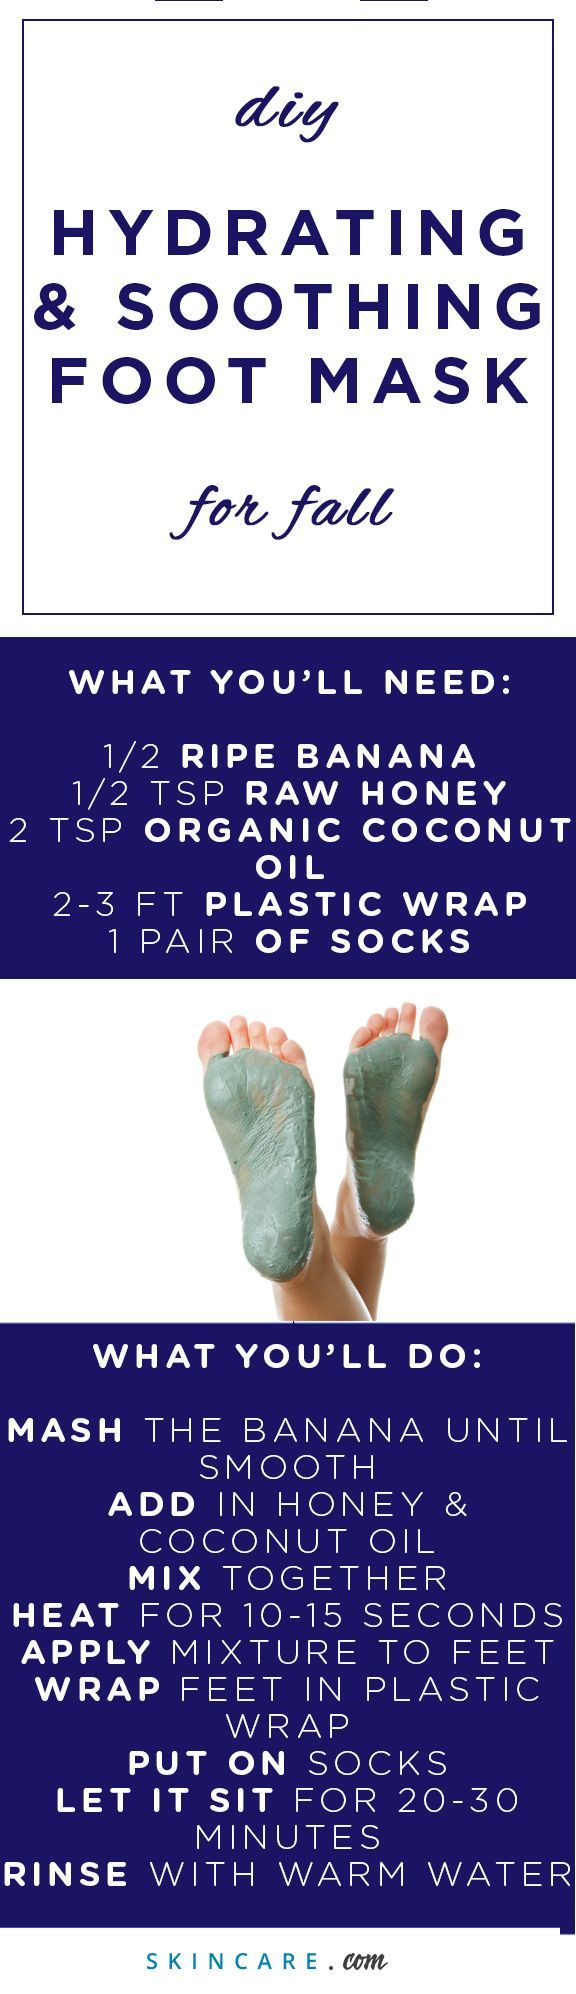 Give the skin on your feet proper care and attention with our DIY moisturizing foot mask. Perfect during a DIY pedicure or spa day, this DIY moisturizing foot mask is packed with skin benefiting ingredients, like organic coconut oil, raw honey, and a ripe